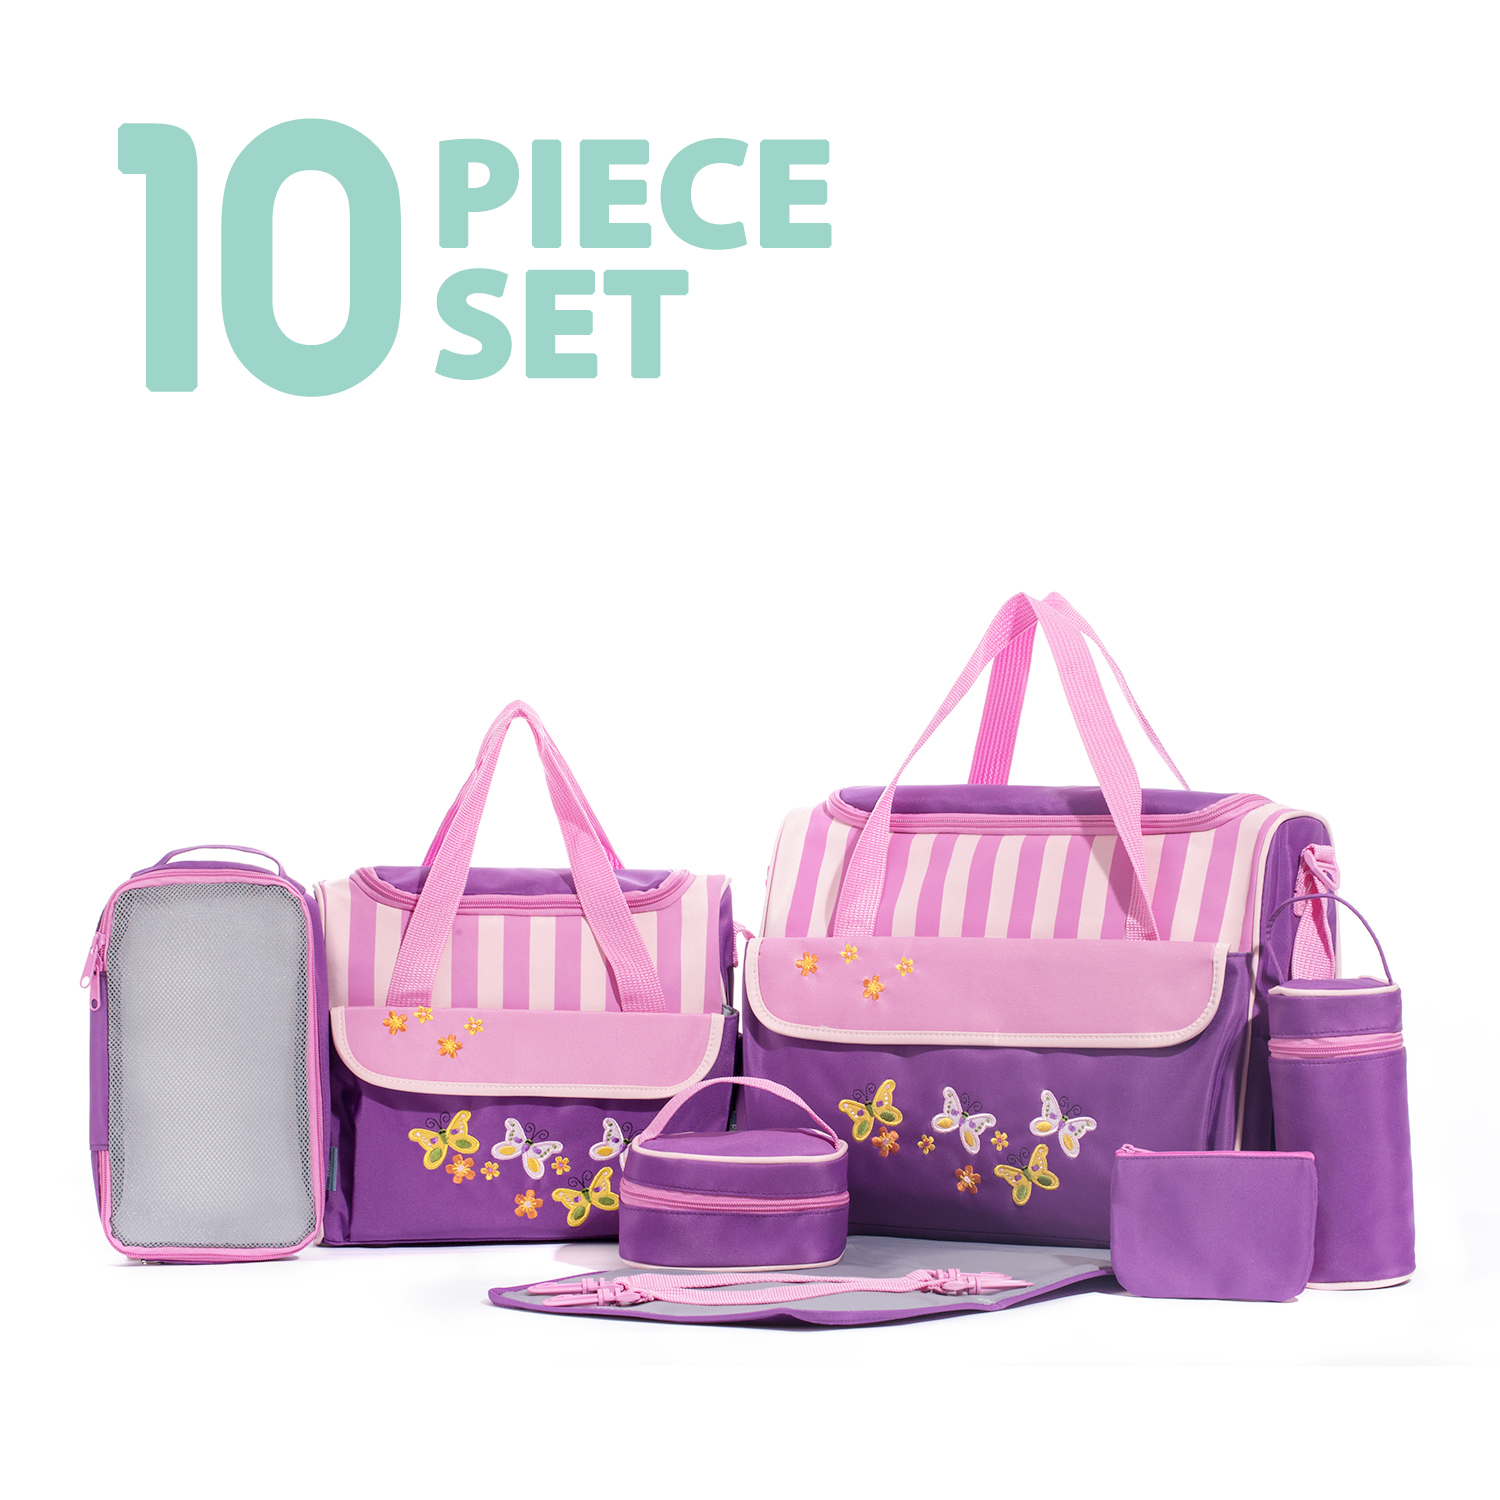 SOHO Collections, 10 Pieces Diaper Bag SetLimited time offer (Butterflies Meadows)